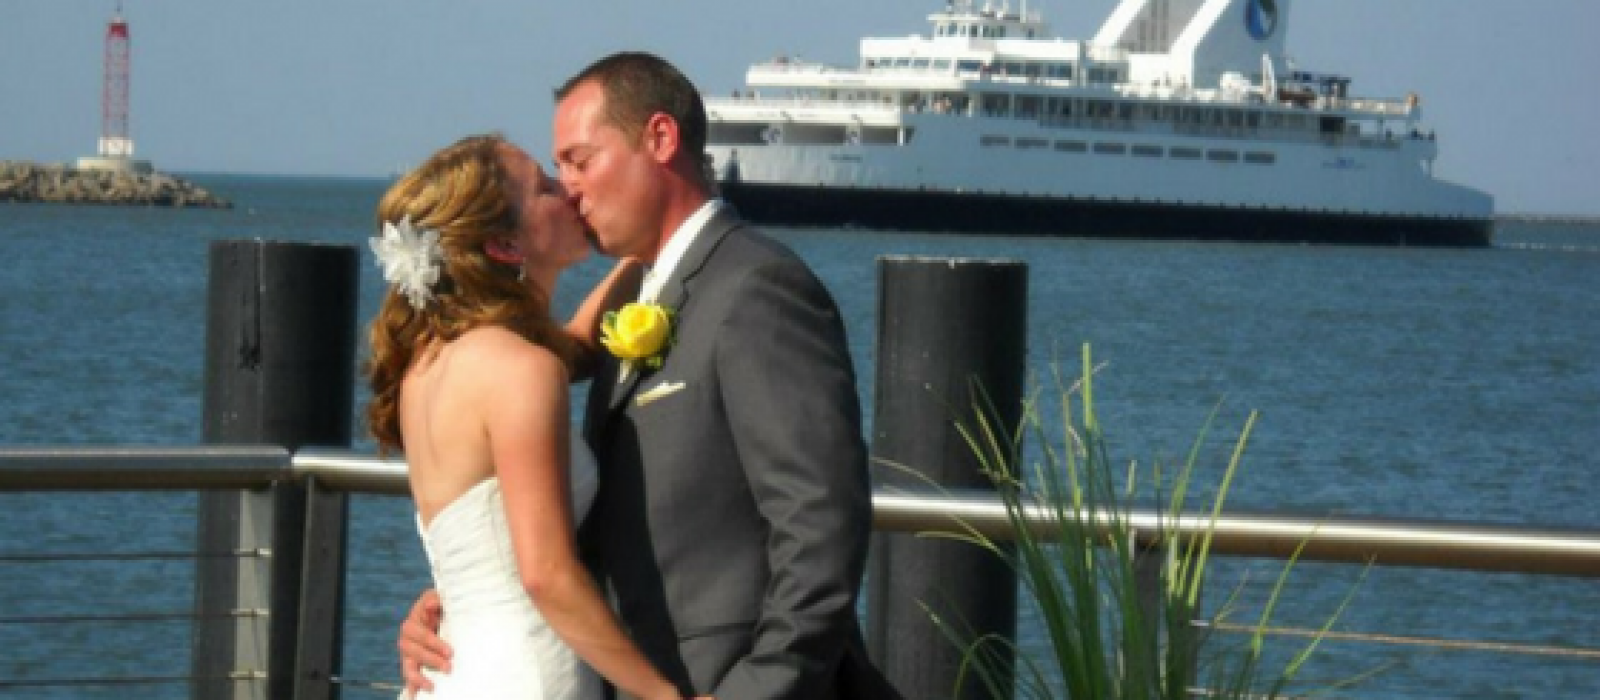 wedding kiss while the Ferry comes in at the Cape May-Lewes Ferry